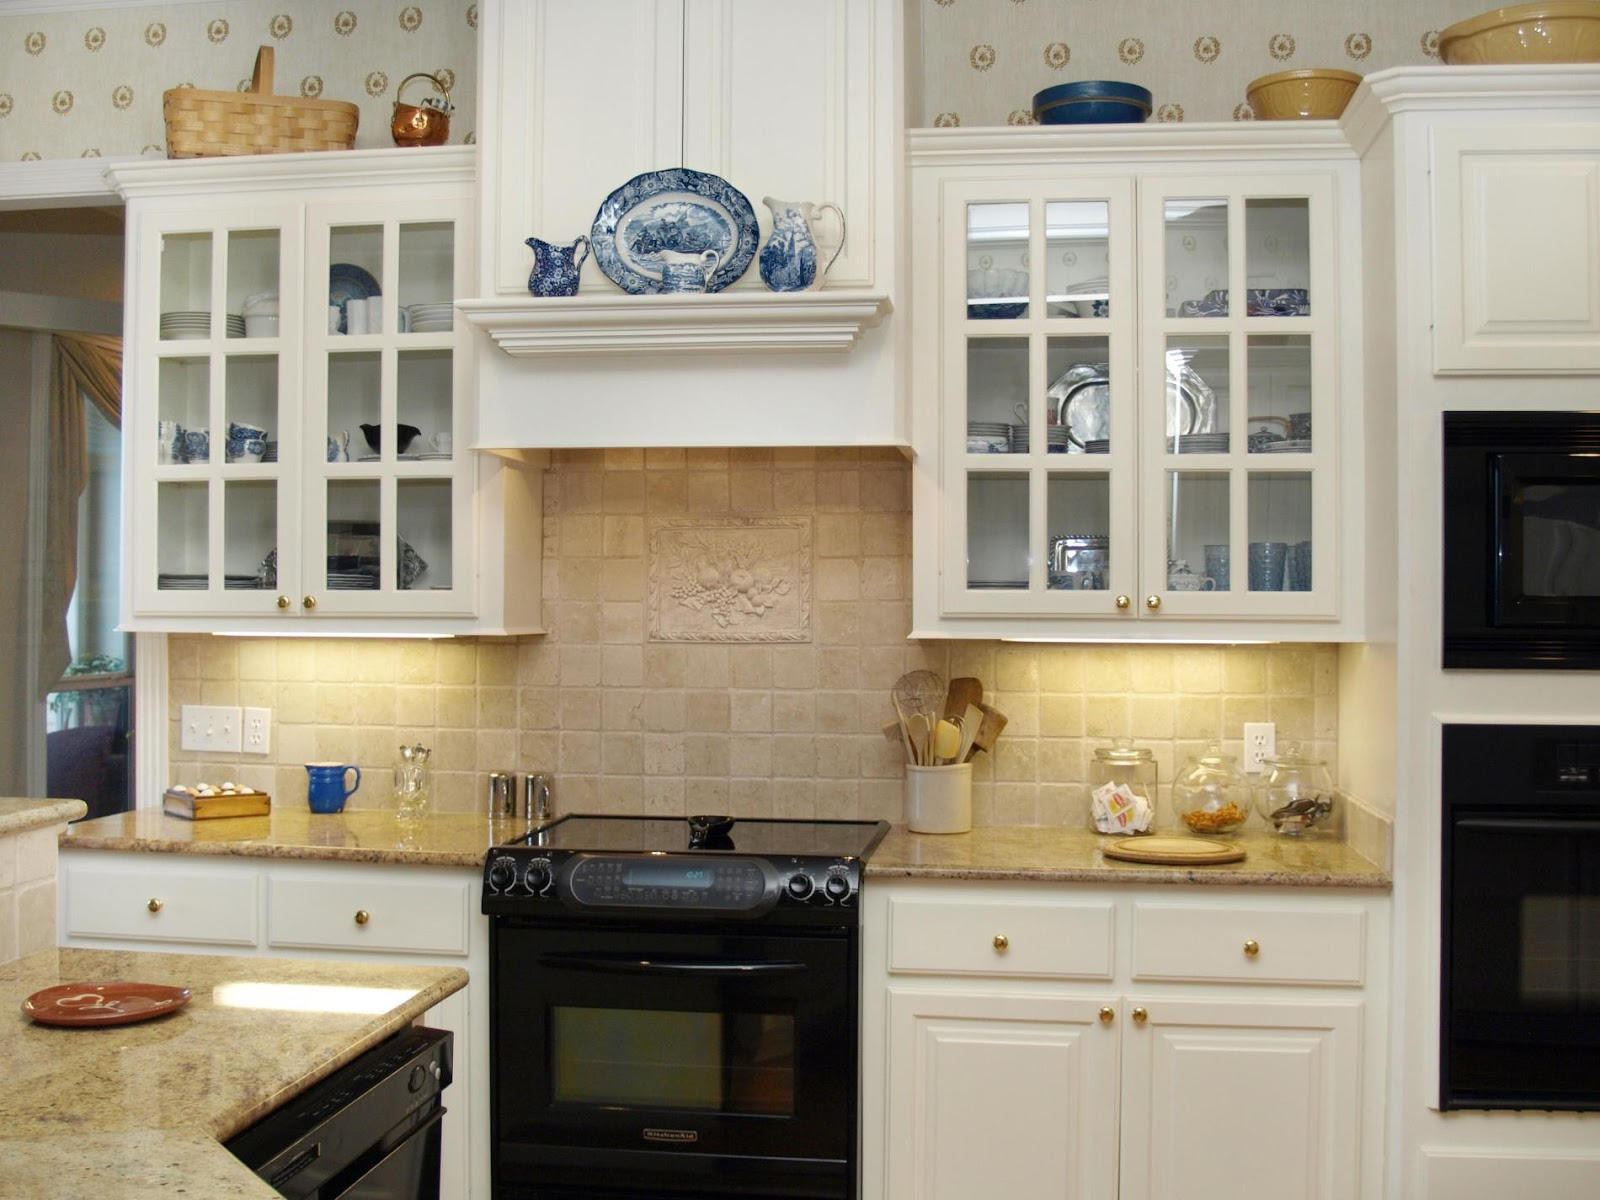 Kitchen shelves decoration dream house experience for Home decor kitchen